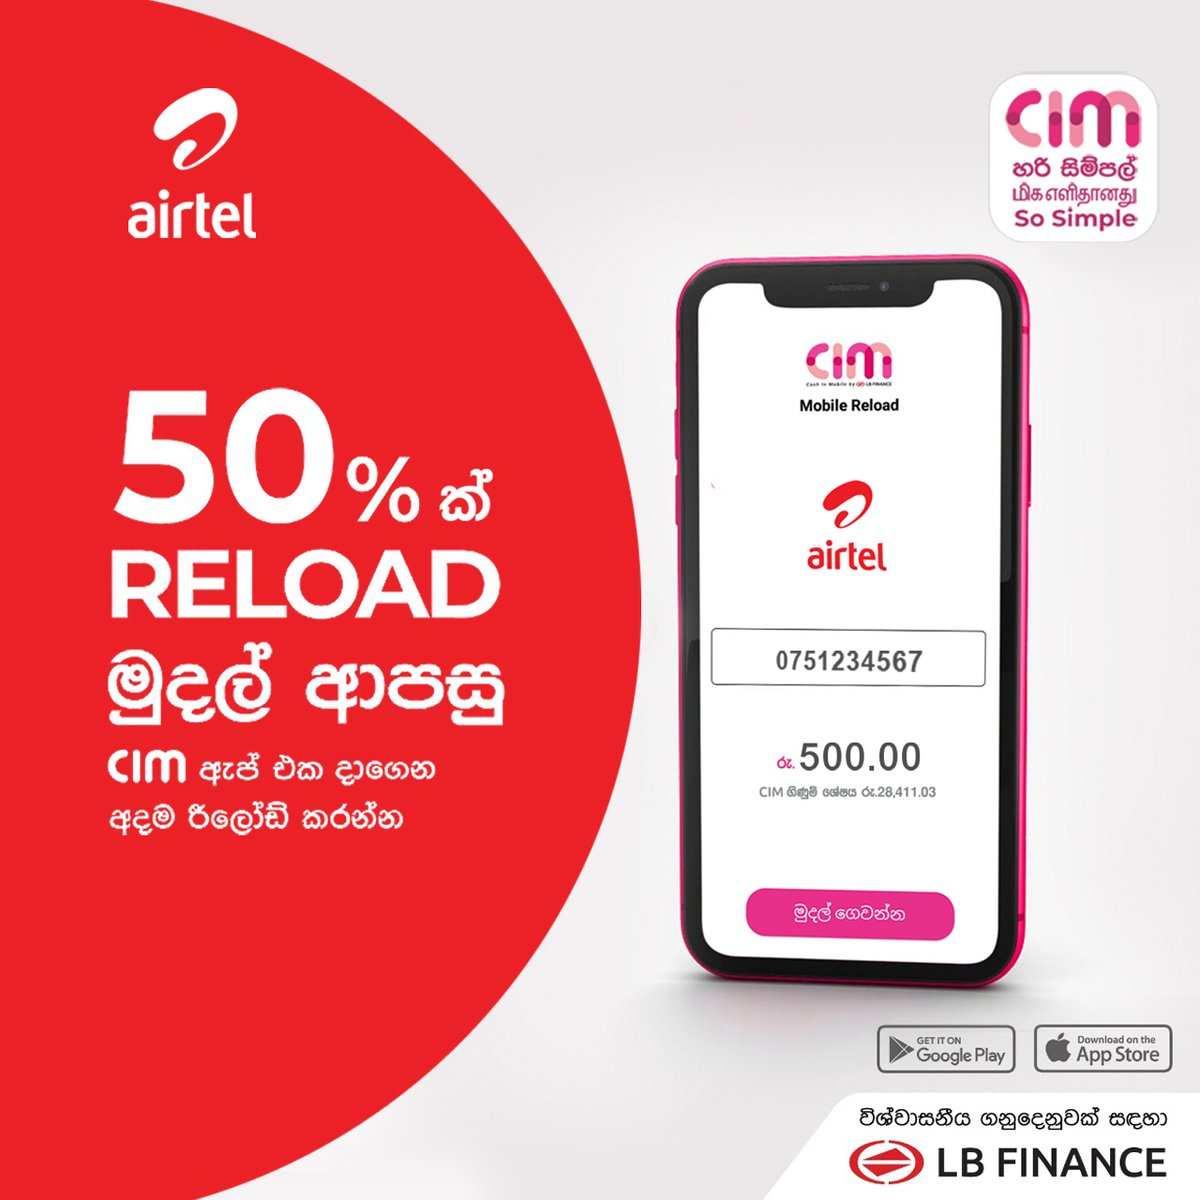 Get 50% Refund for Airtel Top-Up All you have to do is download the CIM app from LB Finance and pay Airtel Reload or bill.  Click the link below to download the app  Download CIM App: Google Play-store -: https://t.co/syGMa0eaRq App store -: https://t.co/BlKQdfzTpR https://t.co/IiXTiiIVzR